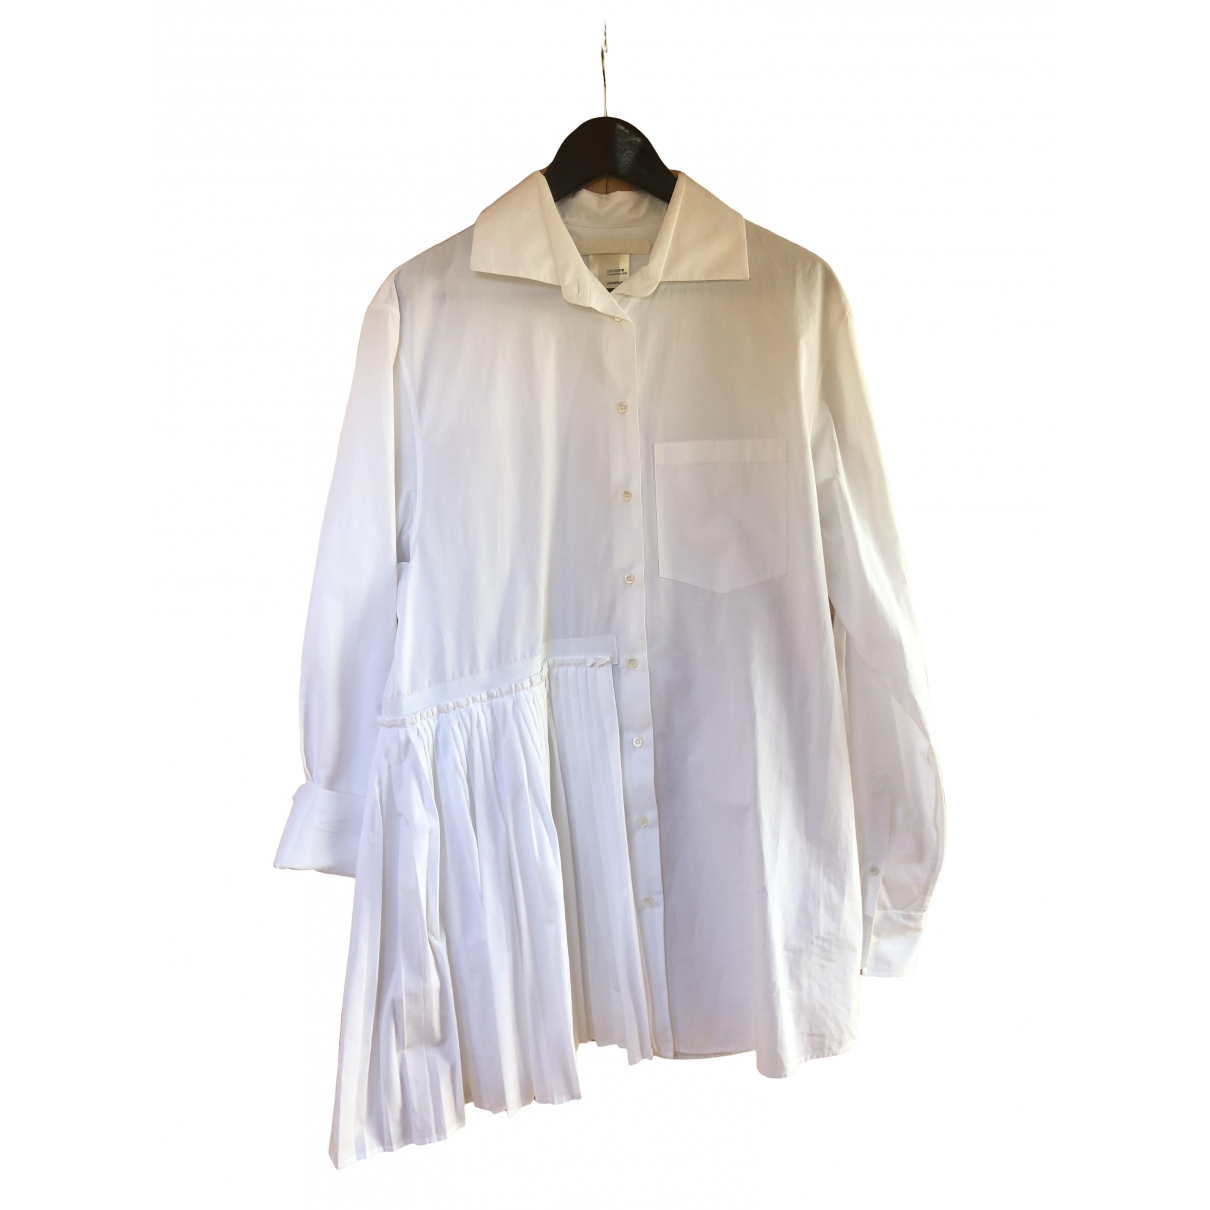 Off-white \N White Cotton  top for Women M International